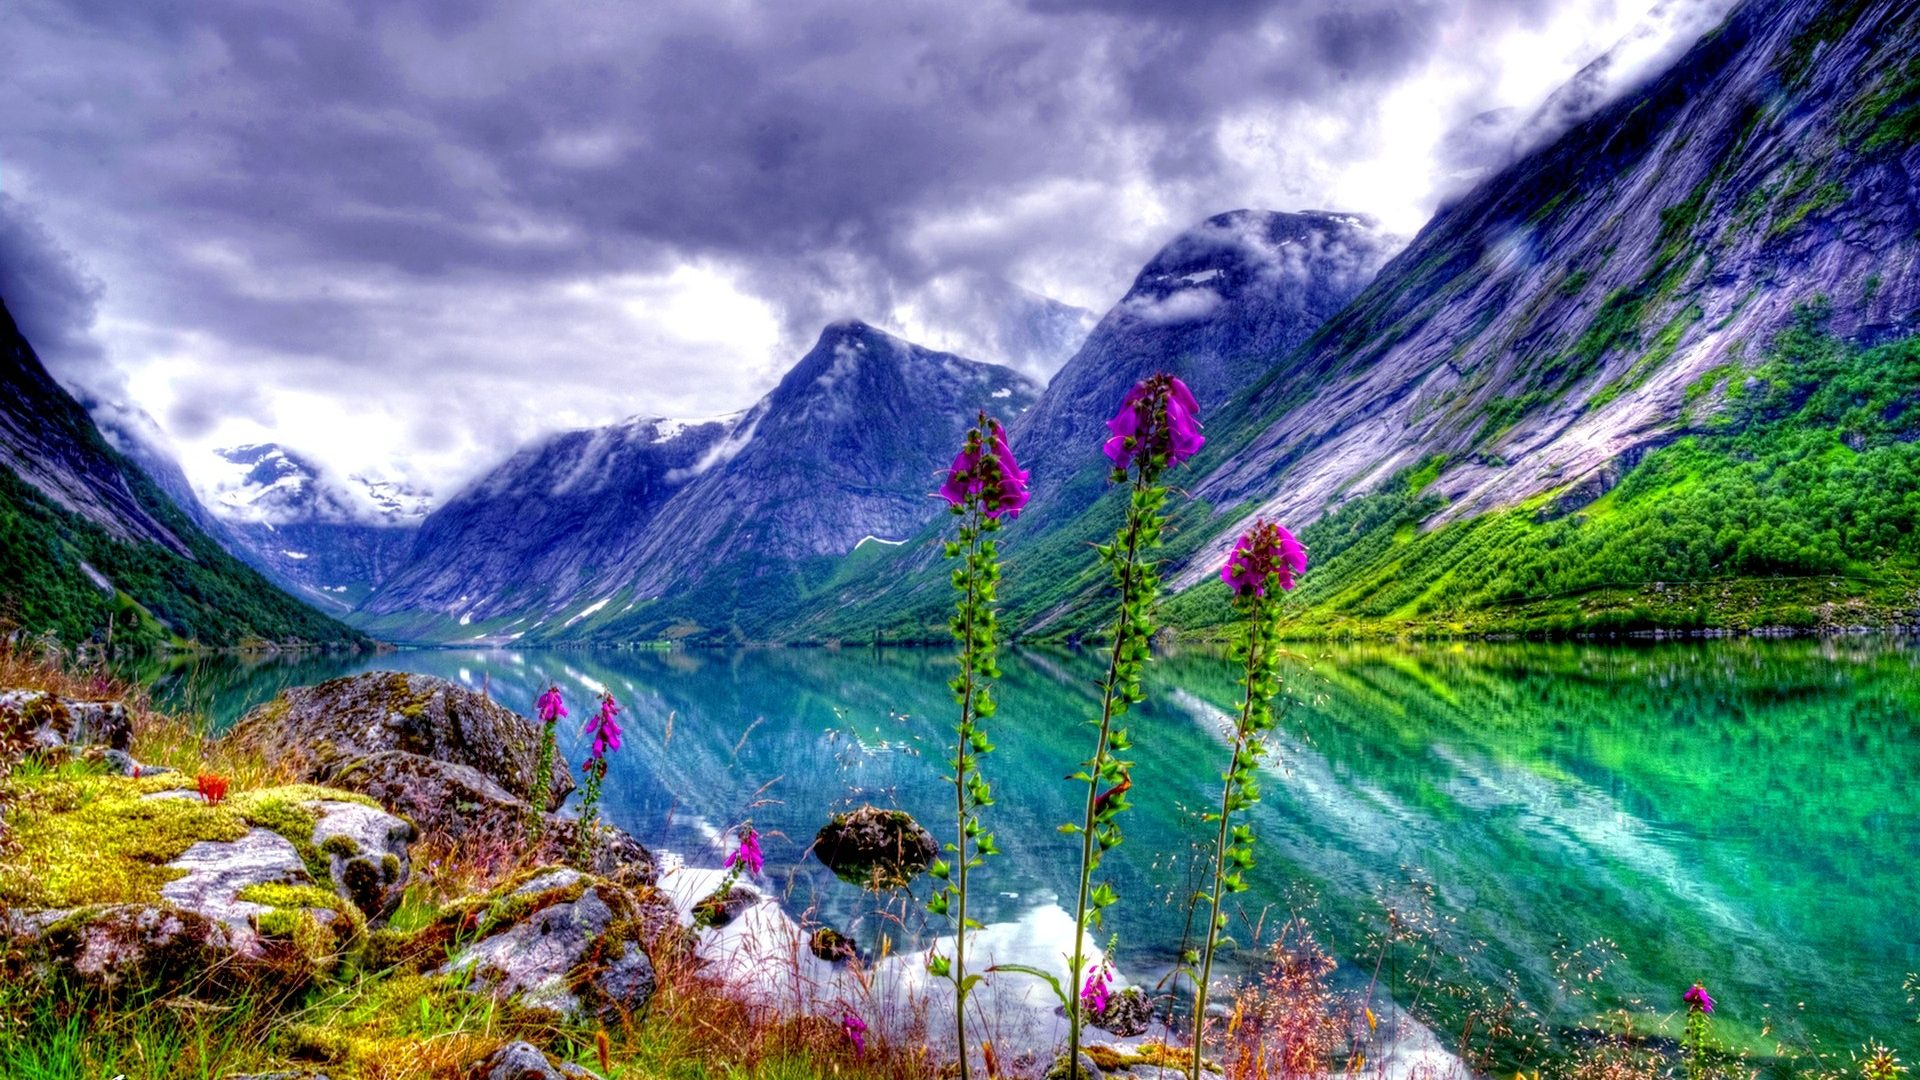 Nature Hd Wallpaper For Mobile 1920x1080